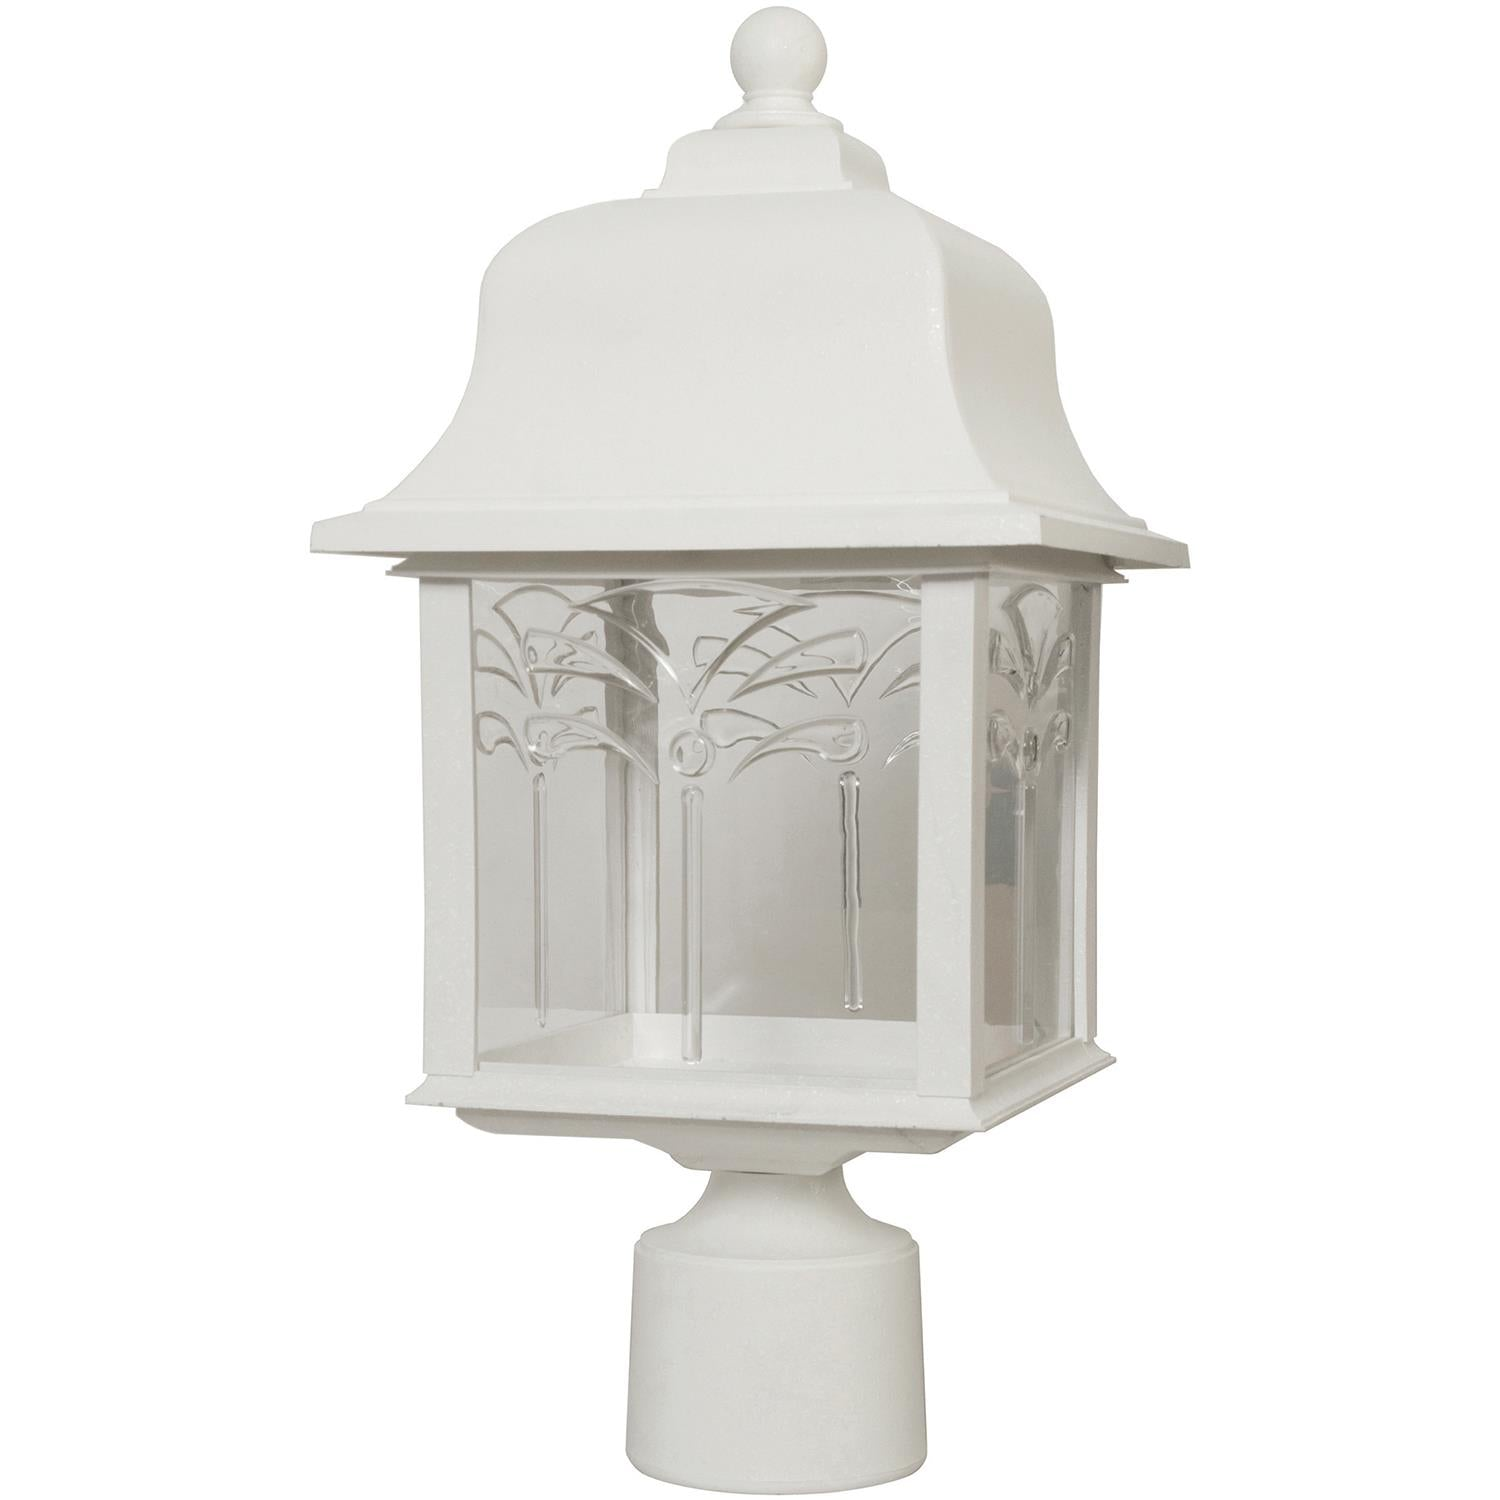 SUNLITE E26 Orchid Style Collection White Outdoor Post Lights